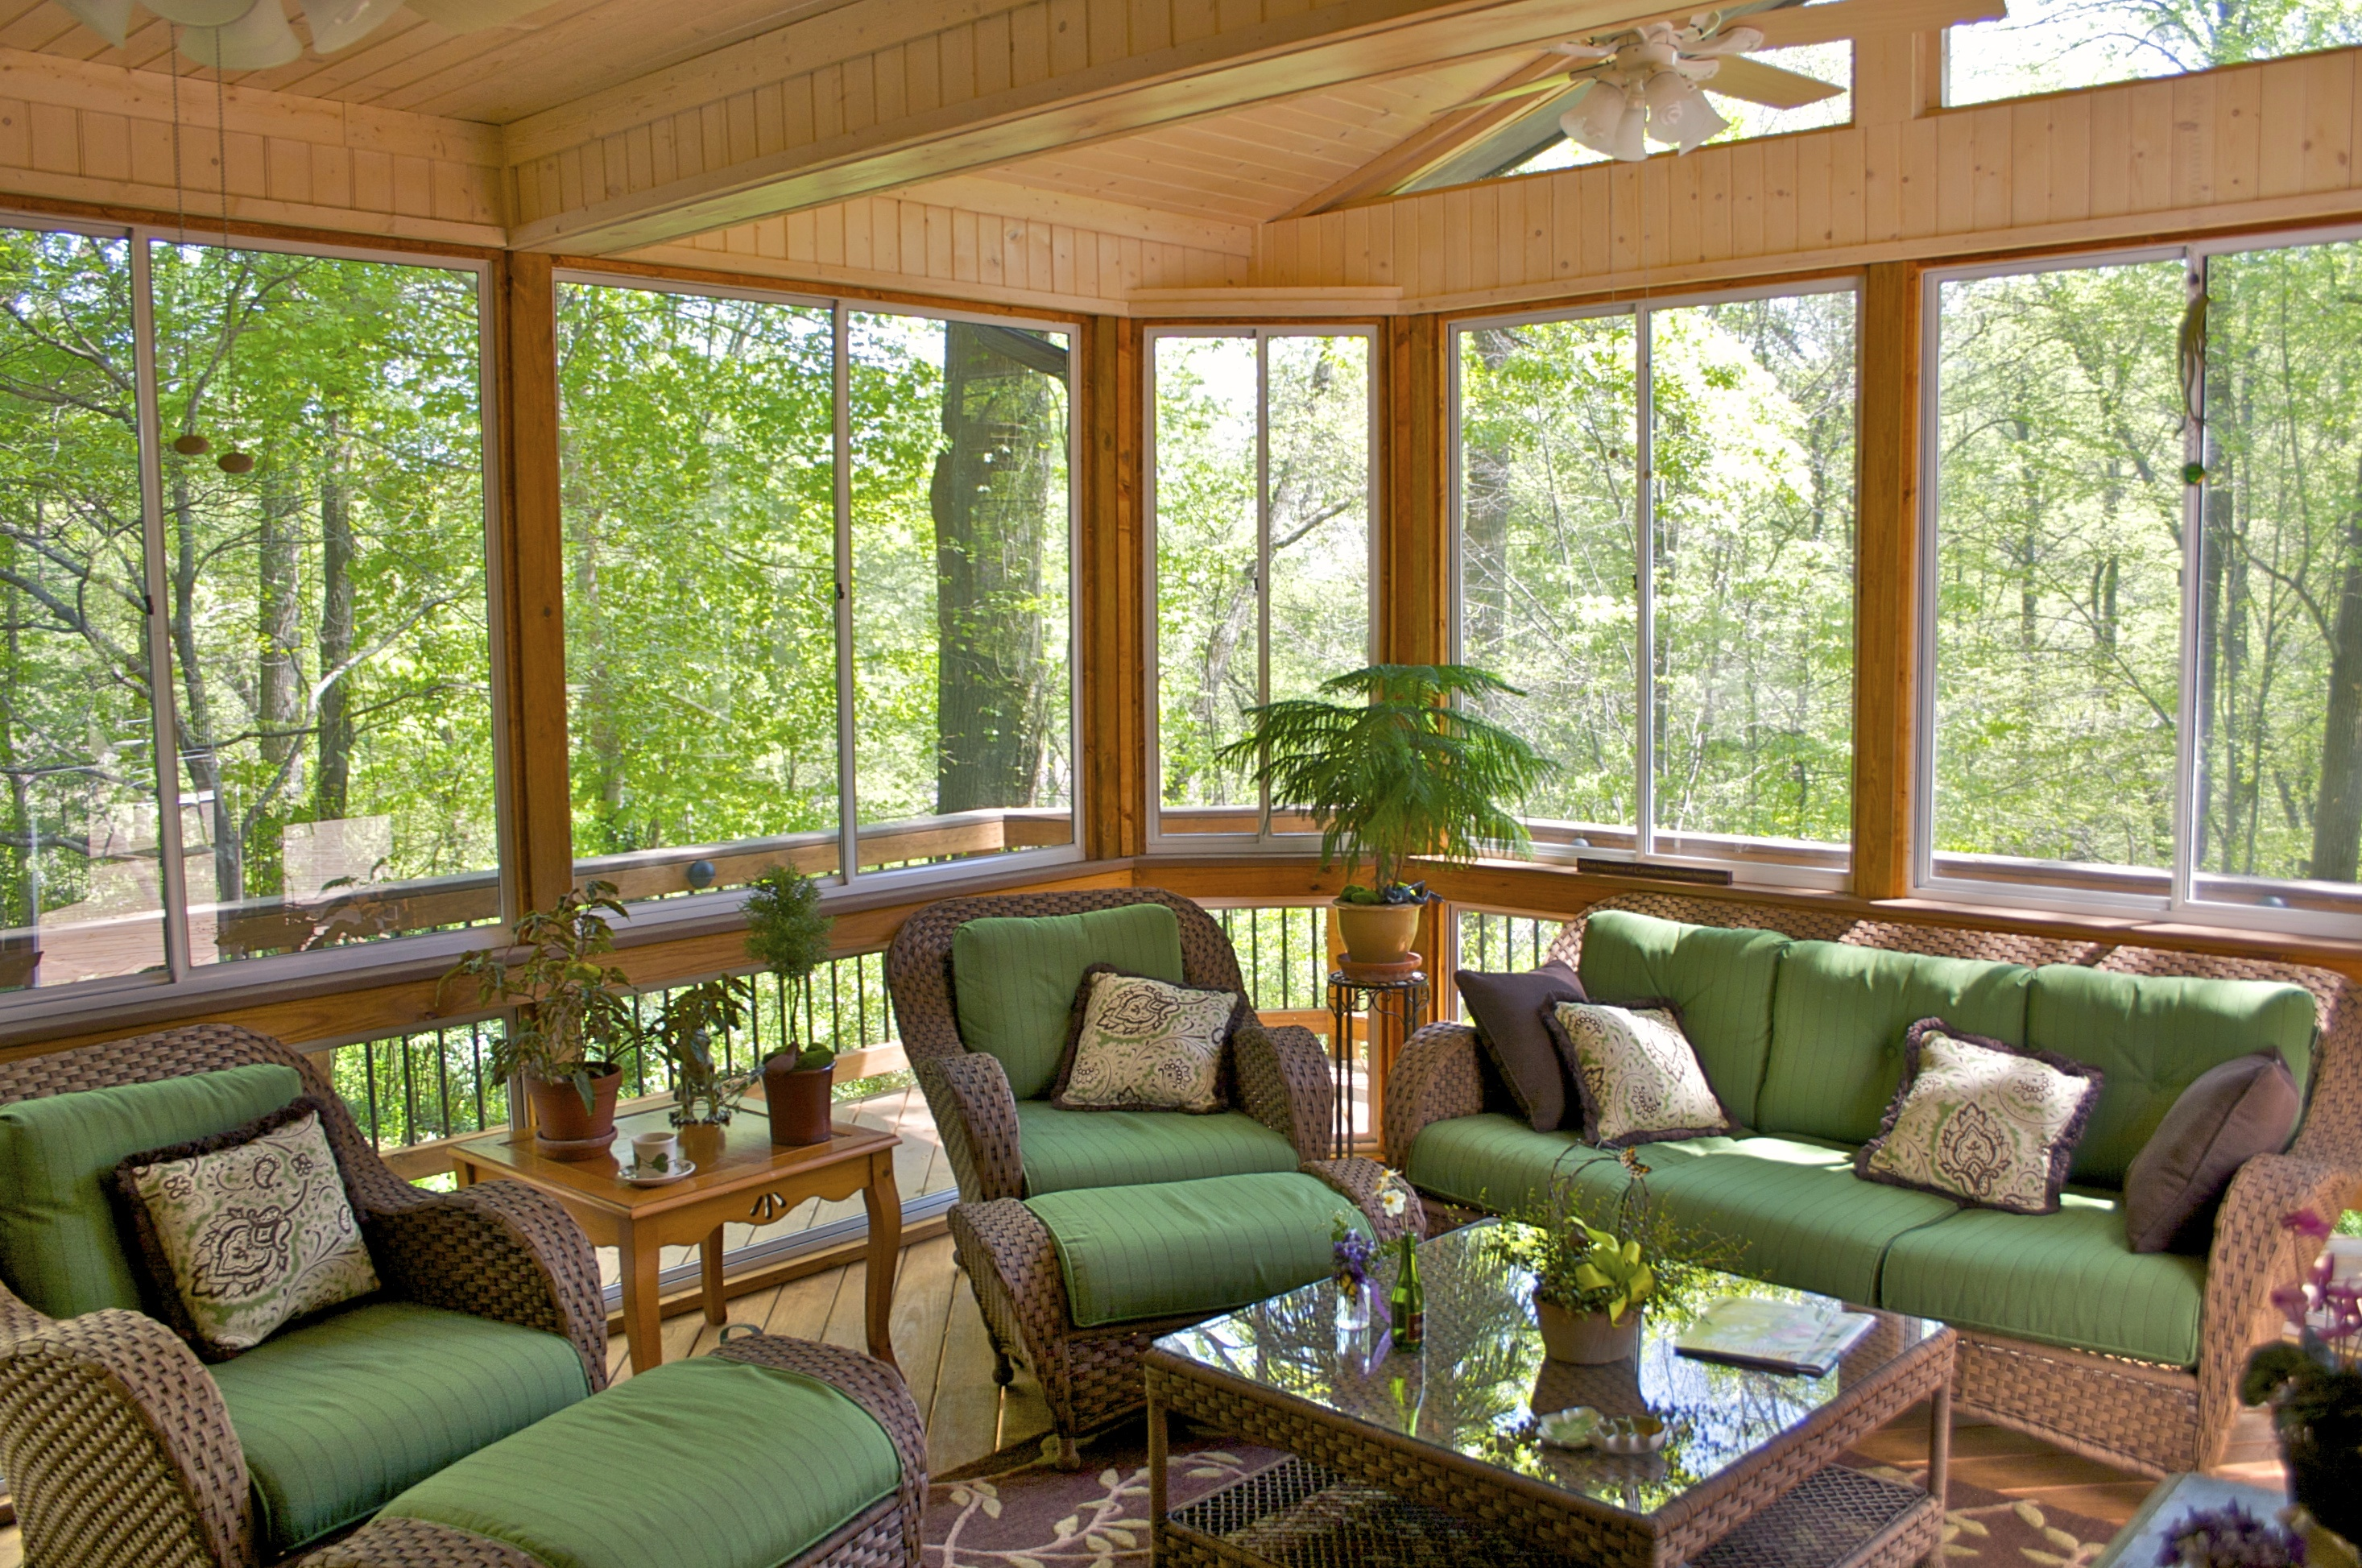 Porch Vs Deck Which Is The More Befitting For Your Home: Custom Sunrooms Vs Screened Rooms By American Deck